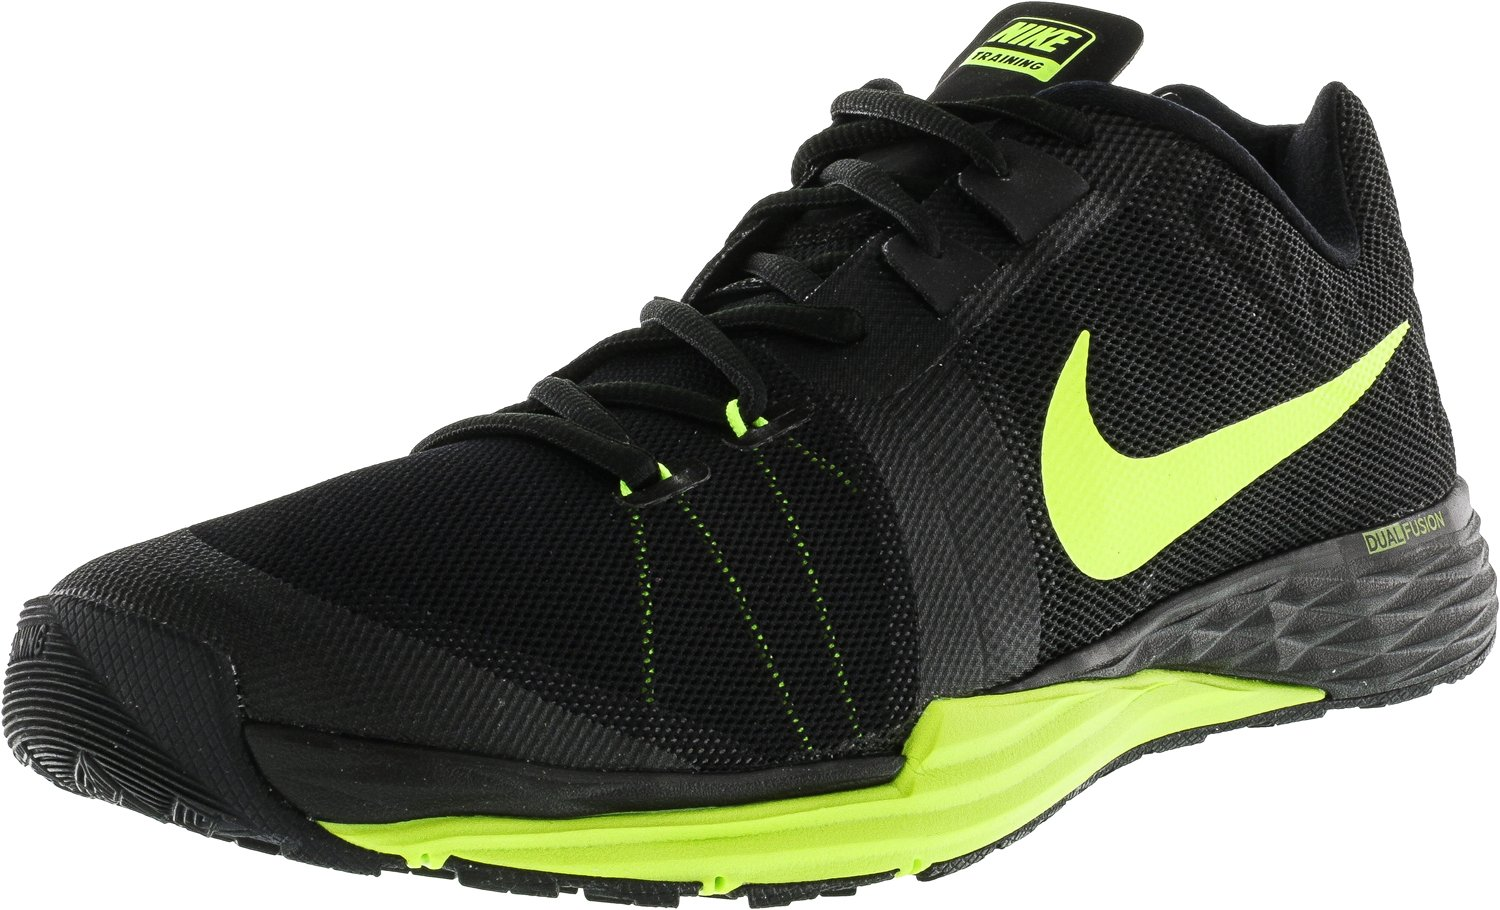 NIKE Men's Train Prime Iron DF Cross Trainer Shoes B019HDQX0G 12.5 D(M) US|Black/Volt/Cool Grey